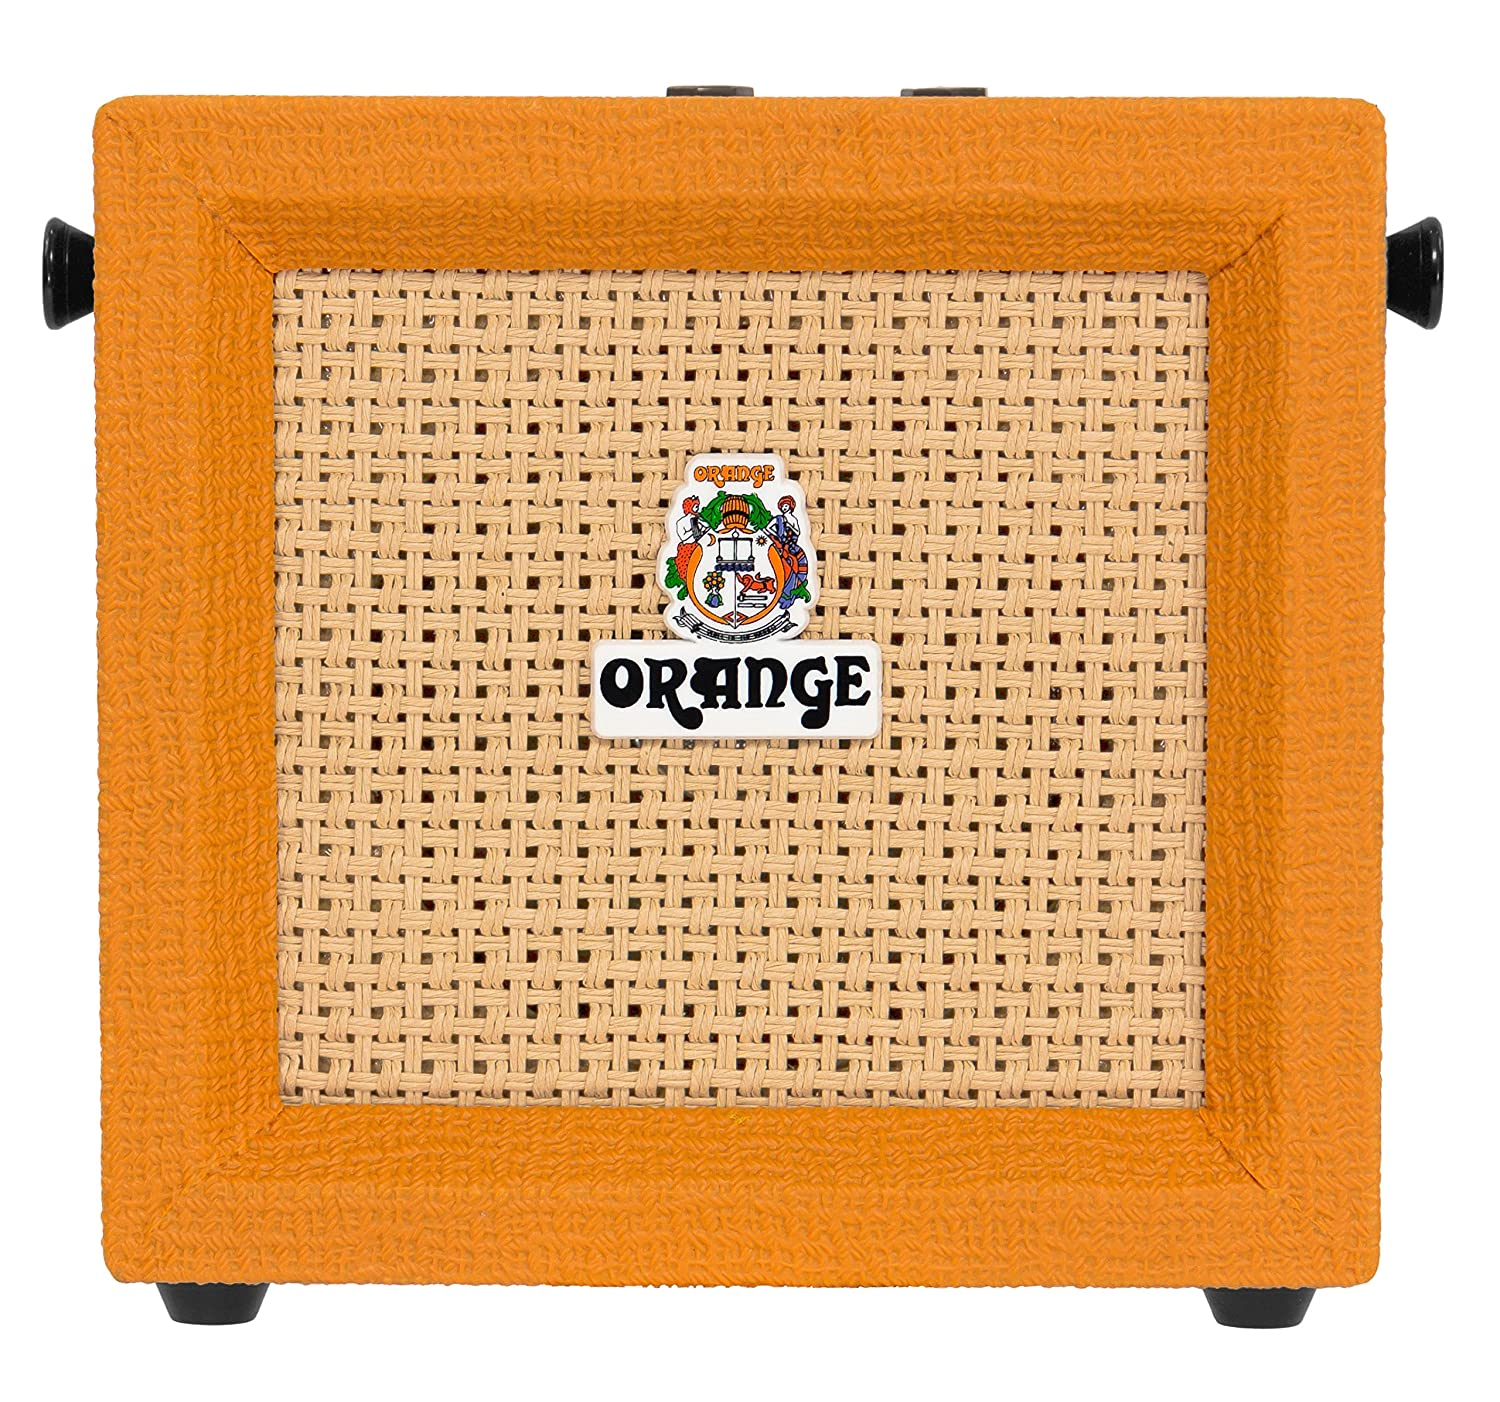 4. Orange Amplifiers Micro Crush PiX 3 Watt 9-Volt Mini Amp